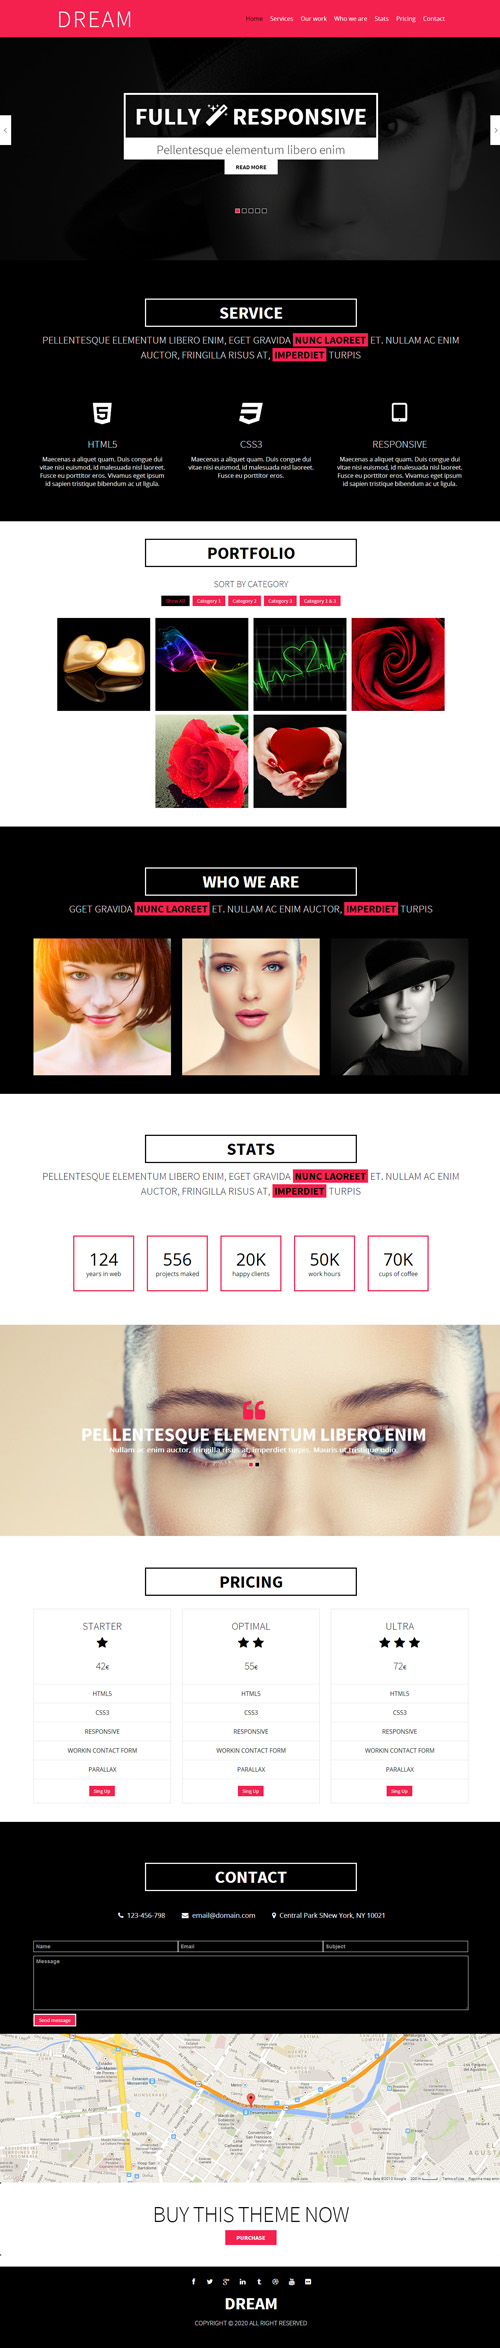 DREAM - One Page Responsive Template